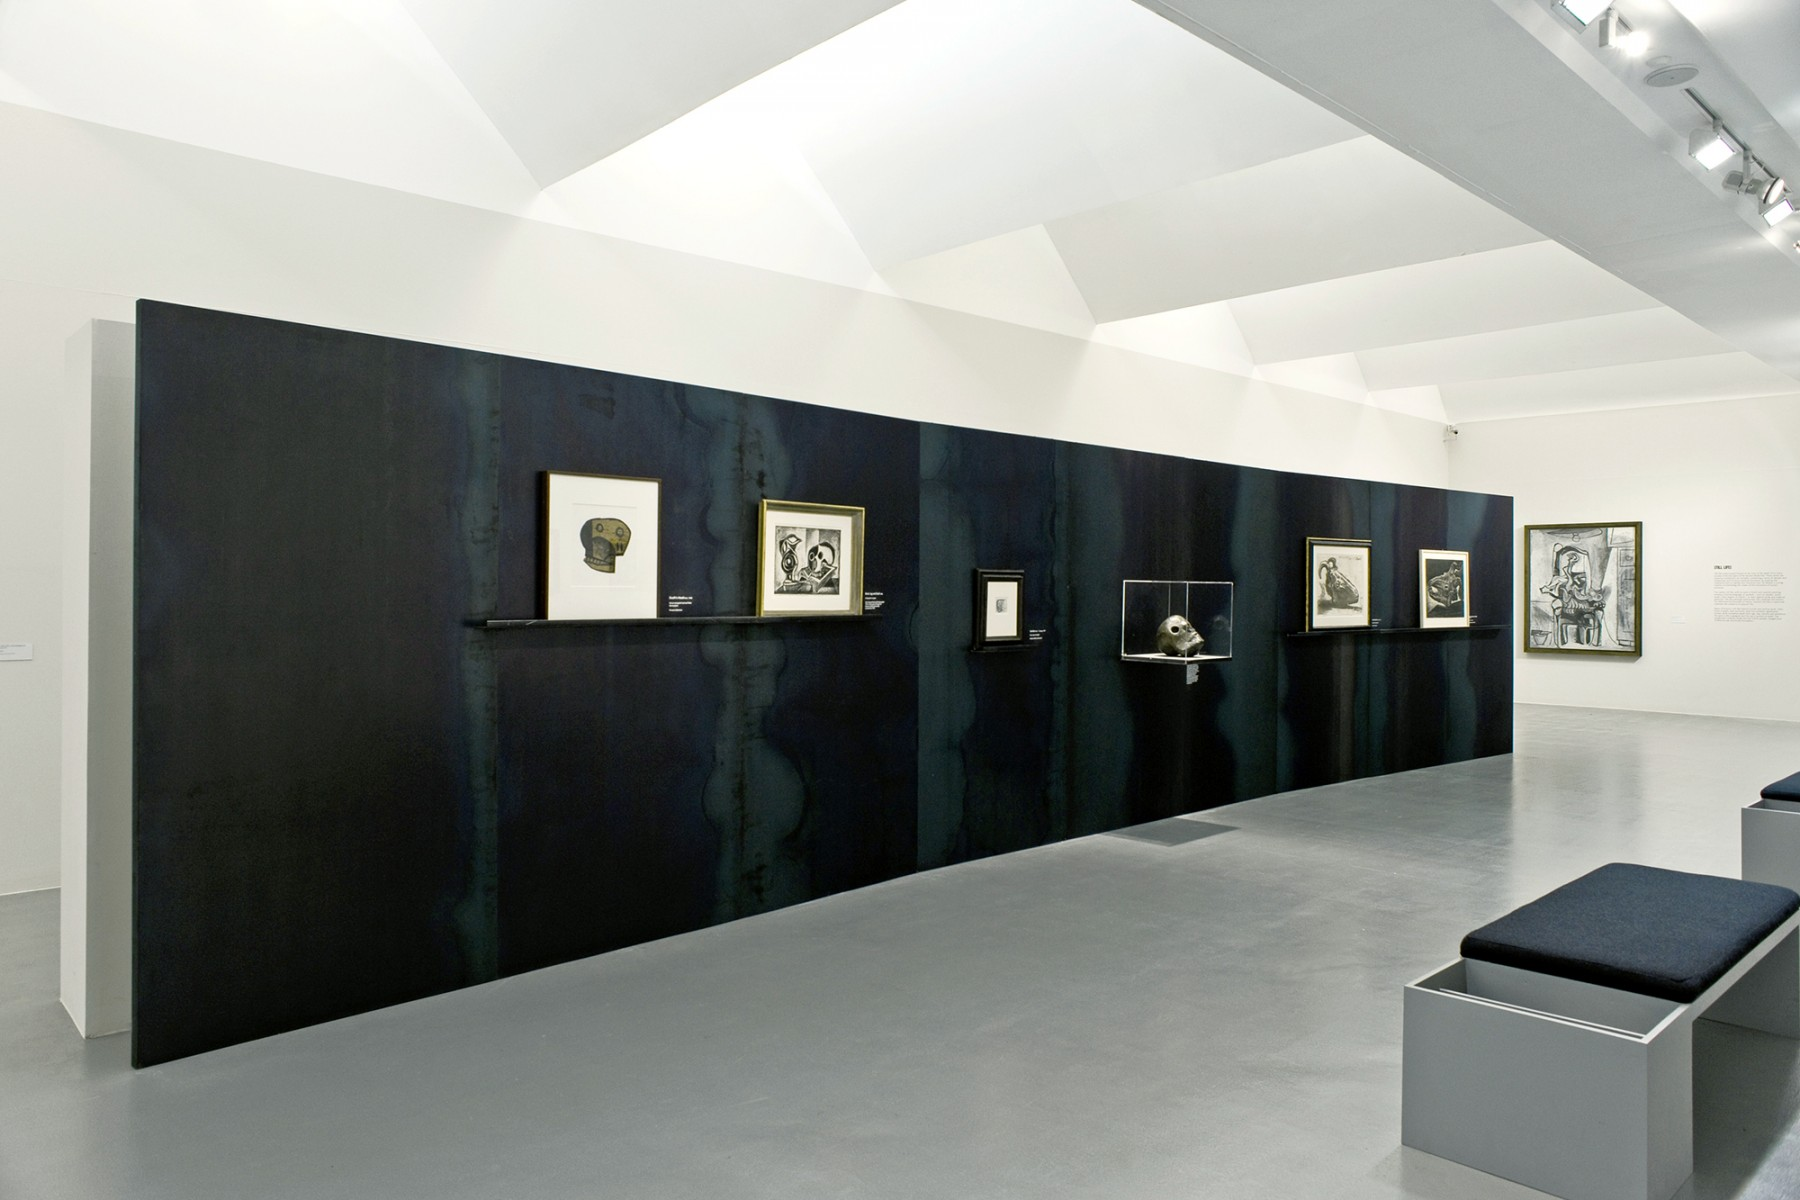 Picasso-Peace-and-Freedom-Tate-Liverpool-design-steel-exhibition-art-Jamie-Fobert-Architects-3